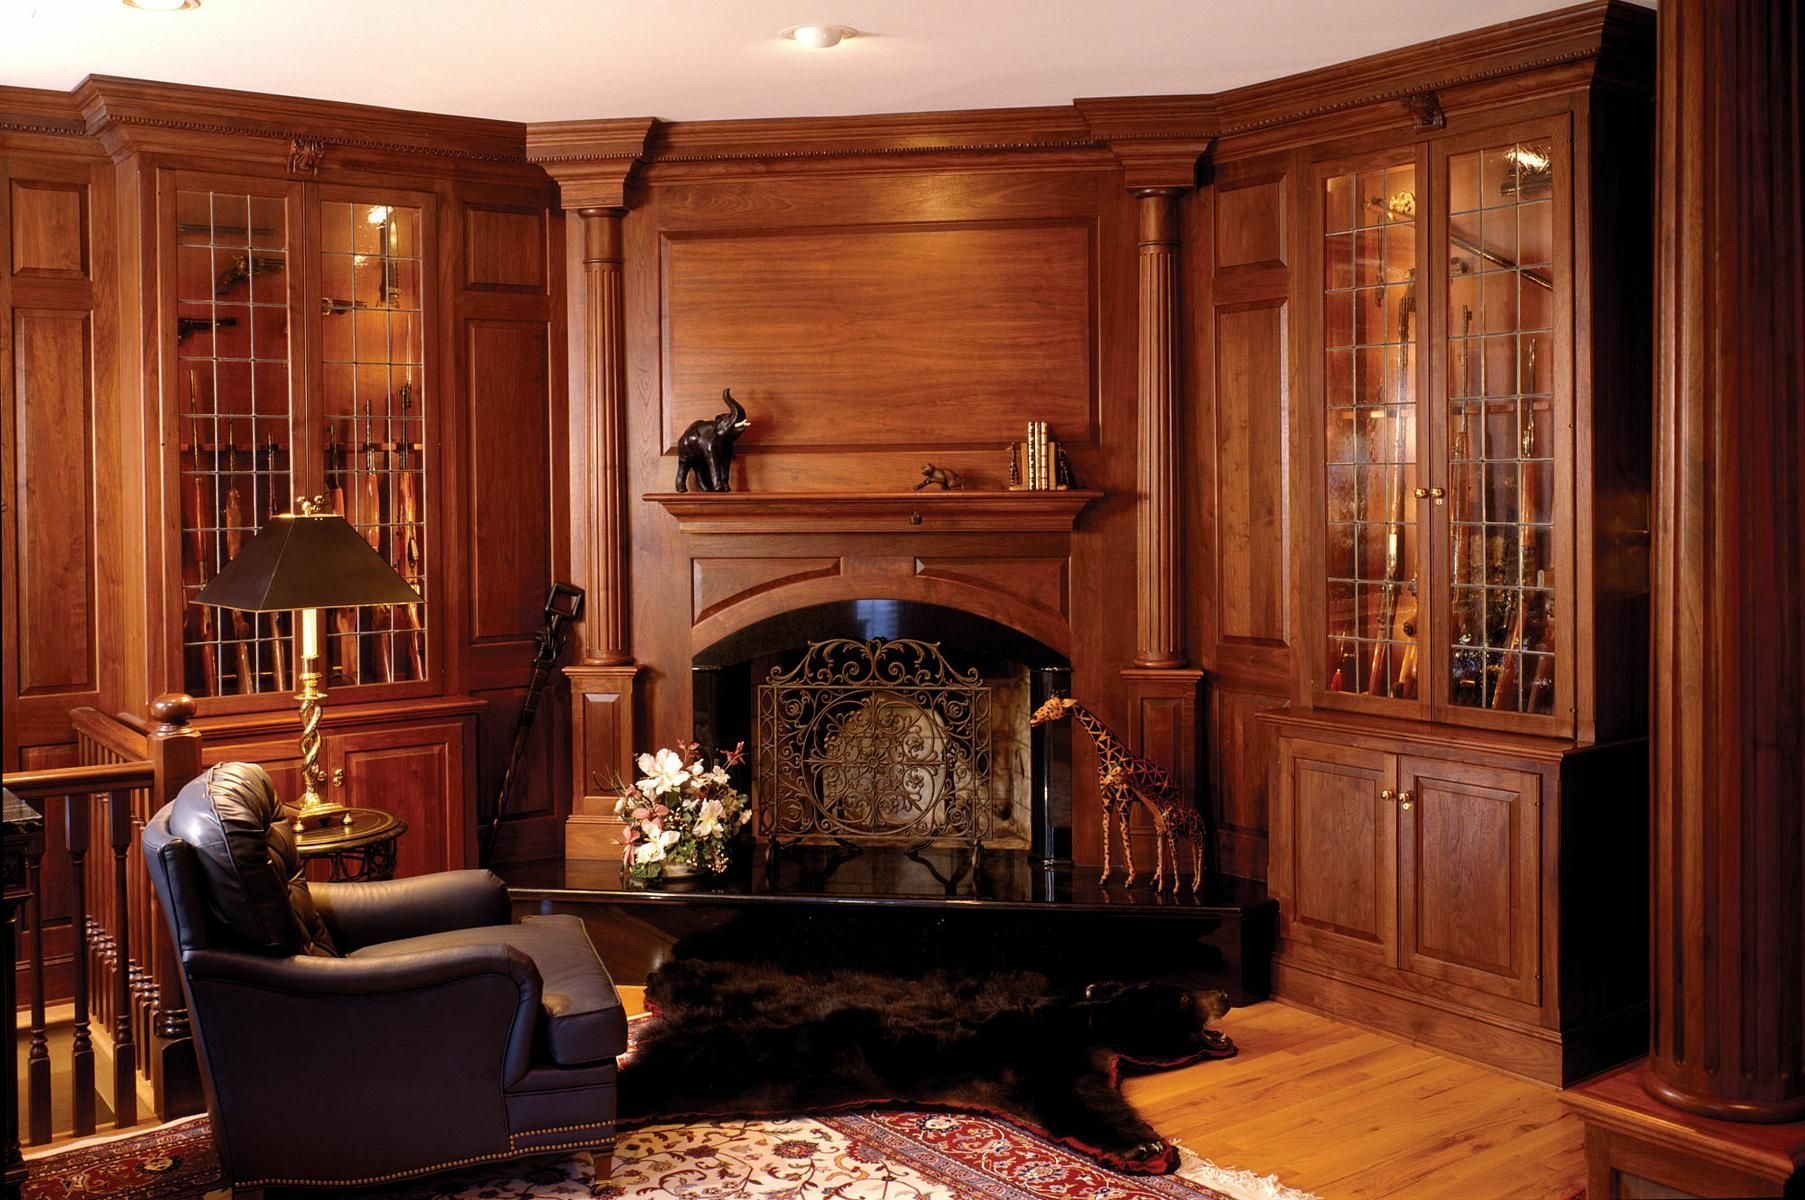 Custom Made Walnut Library With Fireplace And Gun Cabinets & Custom Made Walnut Library With Fireplace And Gun Cabinets | Outside ...